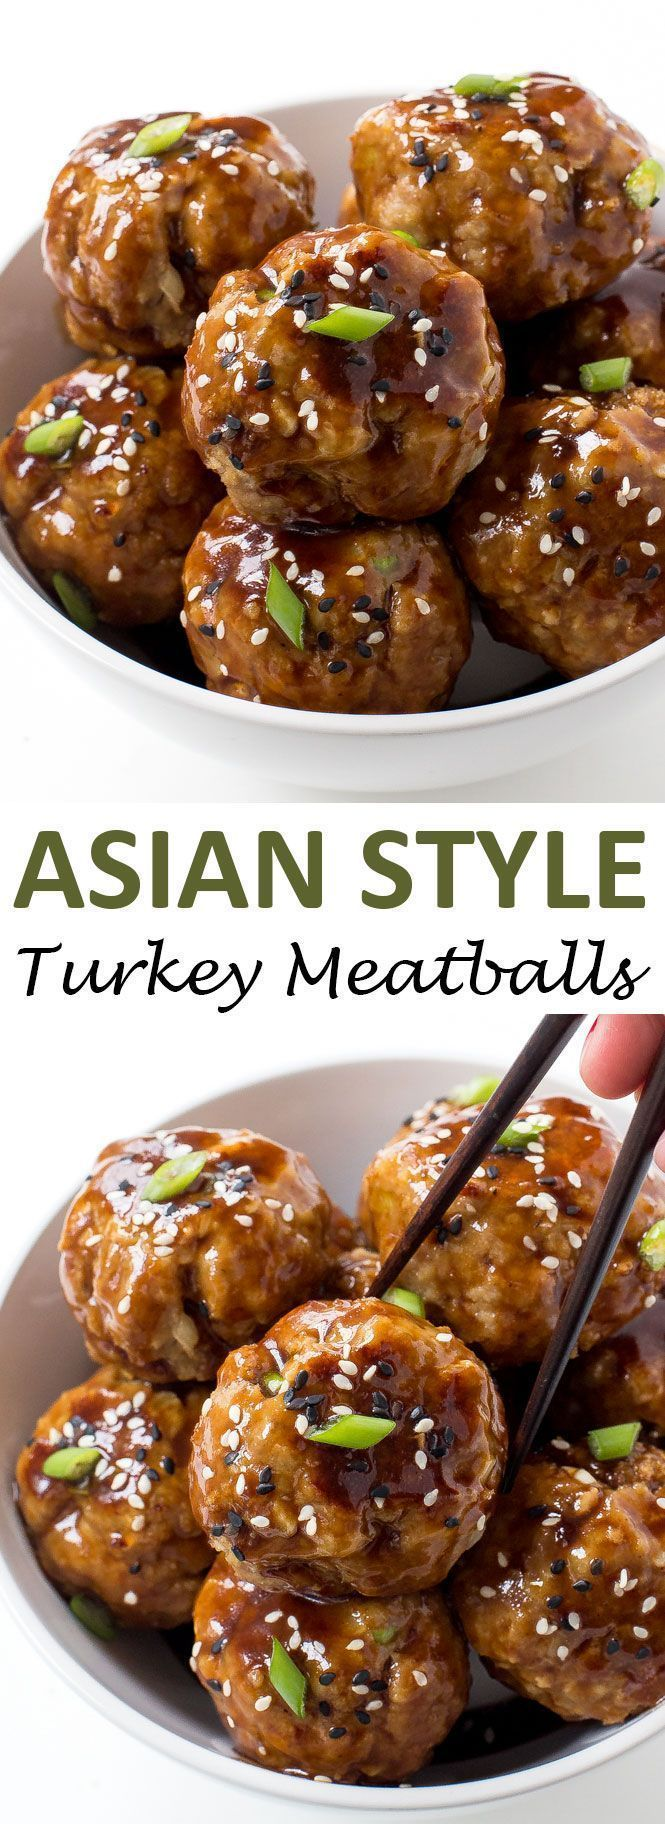 30 Minute Asian Turkey Meatballs~~Baked & tossed in an Asian inspired sauce. Serve as an appetizer or add rice and make it a meal!